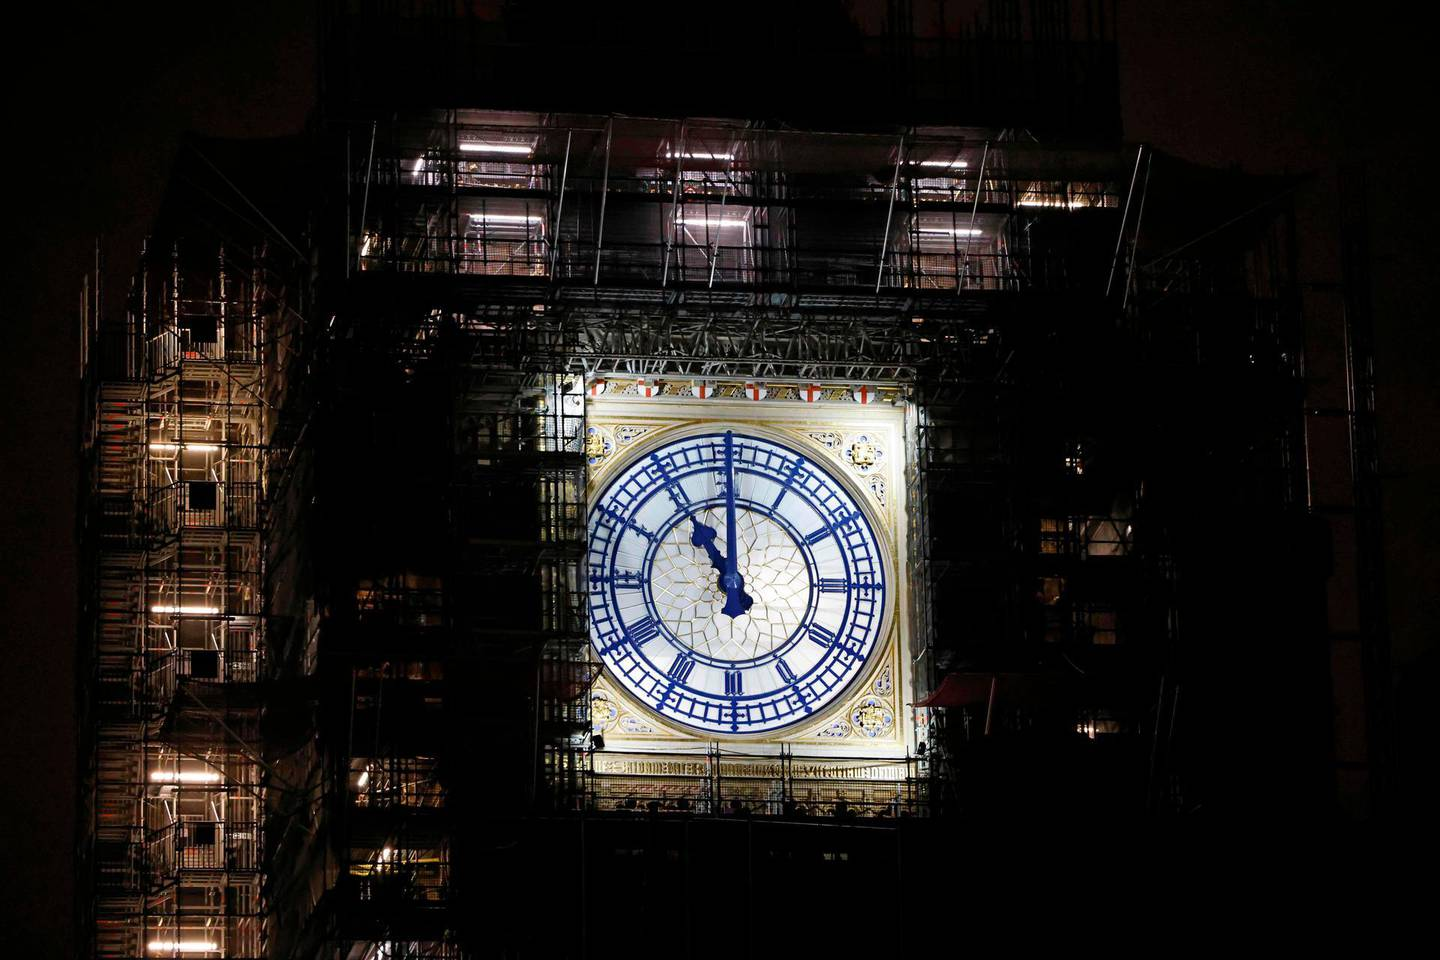 """The clock-face on the Elizabeth Tower, commonly known by the name of the bell, """"Big Ben"""" in London, shows 2300 (GMT), as Britain officially leaves the EU (European Union) trading block, on New Year's Eve, December 31, 2020. The UK's tortuous departure from the European Union takes full effect when Big Ben strikes 11:00 pm (2300 GMT) in central London, just as most of the European mainland ushers in 2021 at midnight. / AFP / Tolga Akmen"""